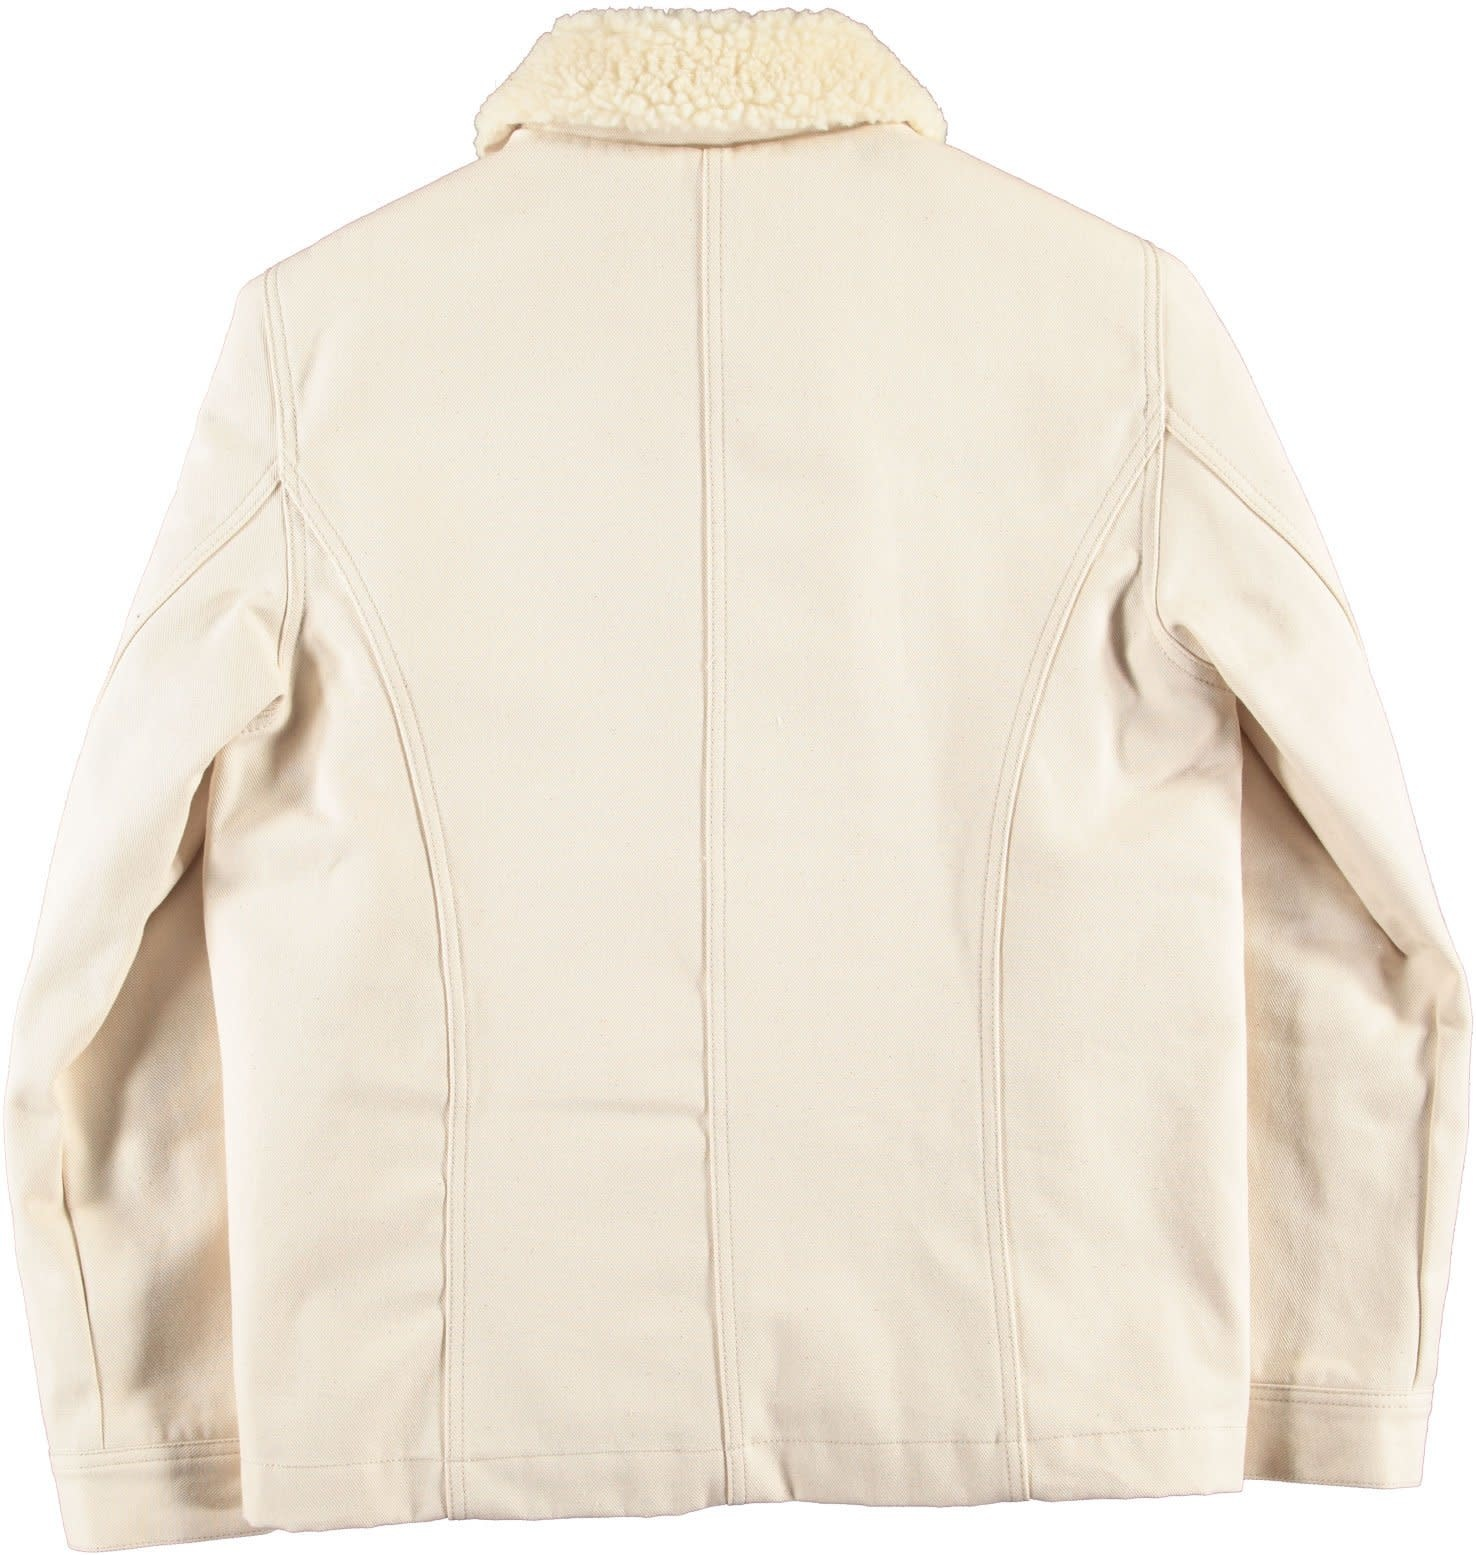 Chore 673 Worker Jacket Snow Off White Sherpa-2